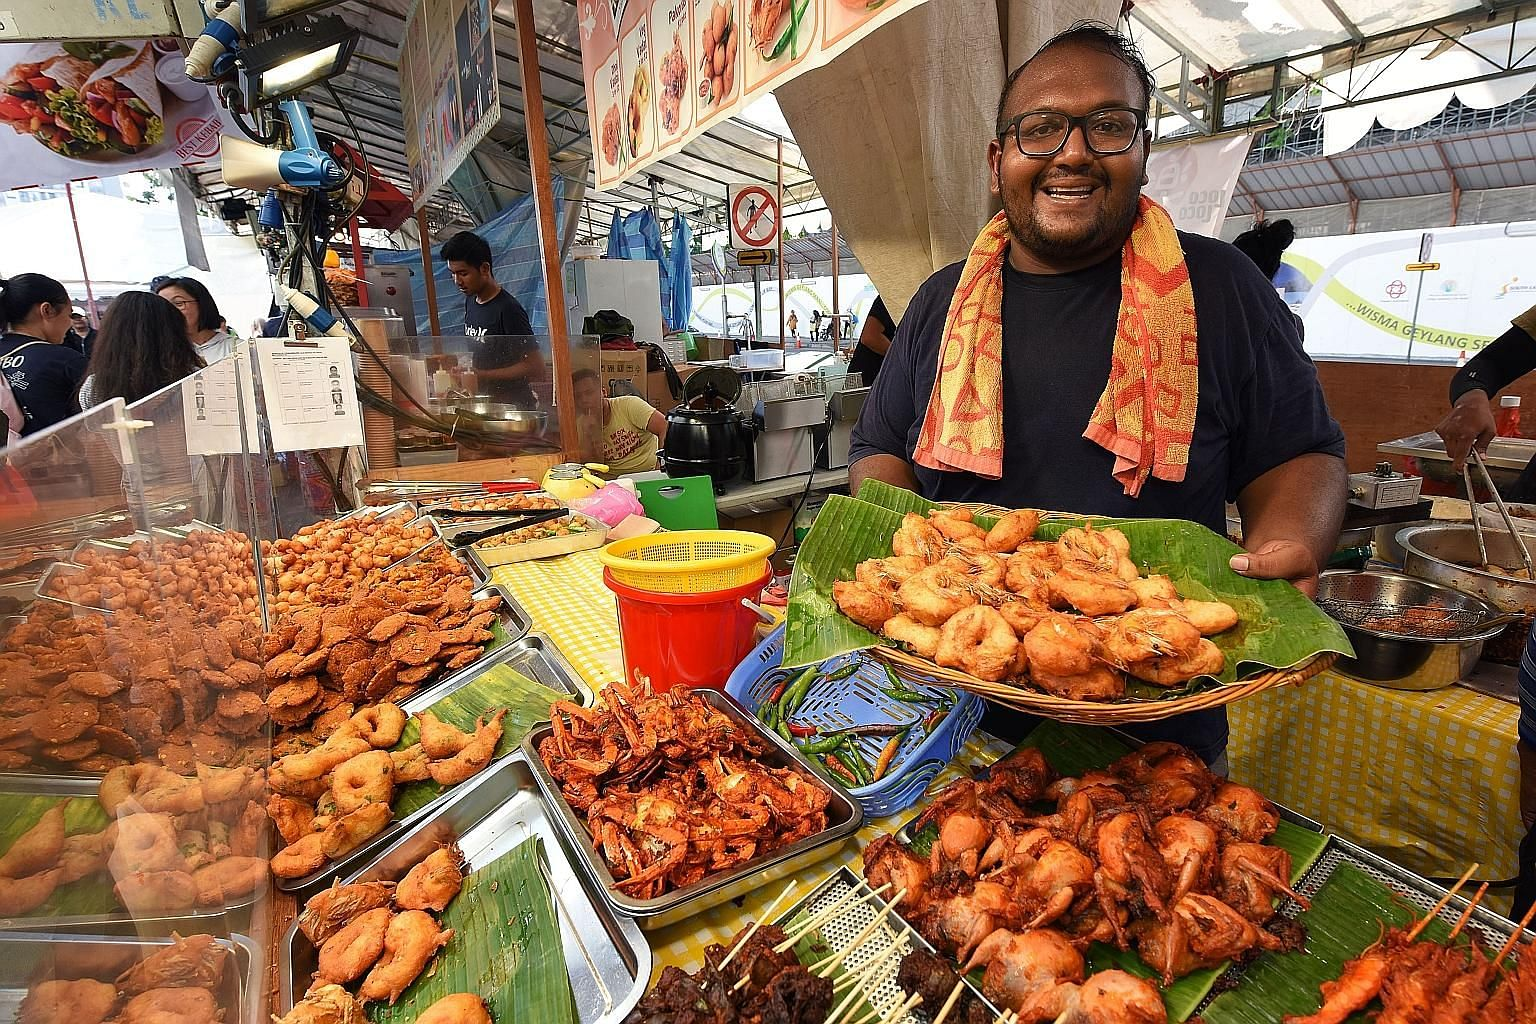 Mr Suriyah says it would be very hard not to take part in the bazaar as The Original Recipe has sold vadai there for the past 30 years.